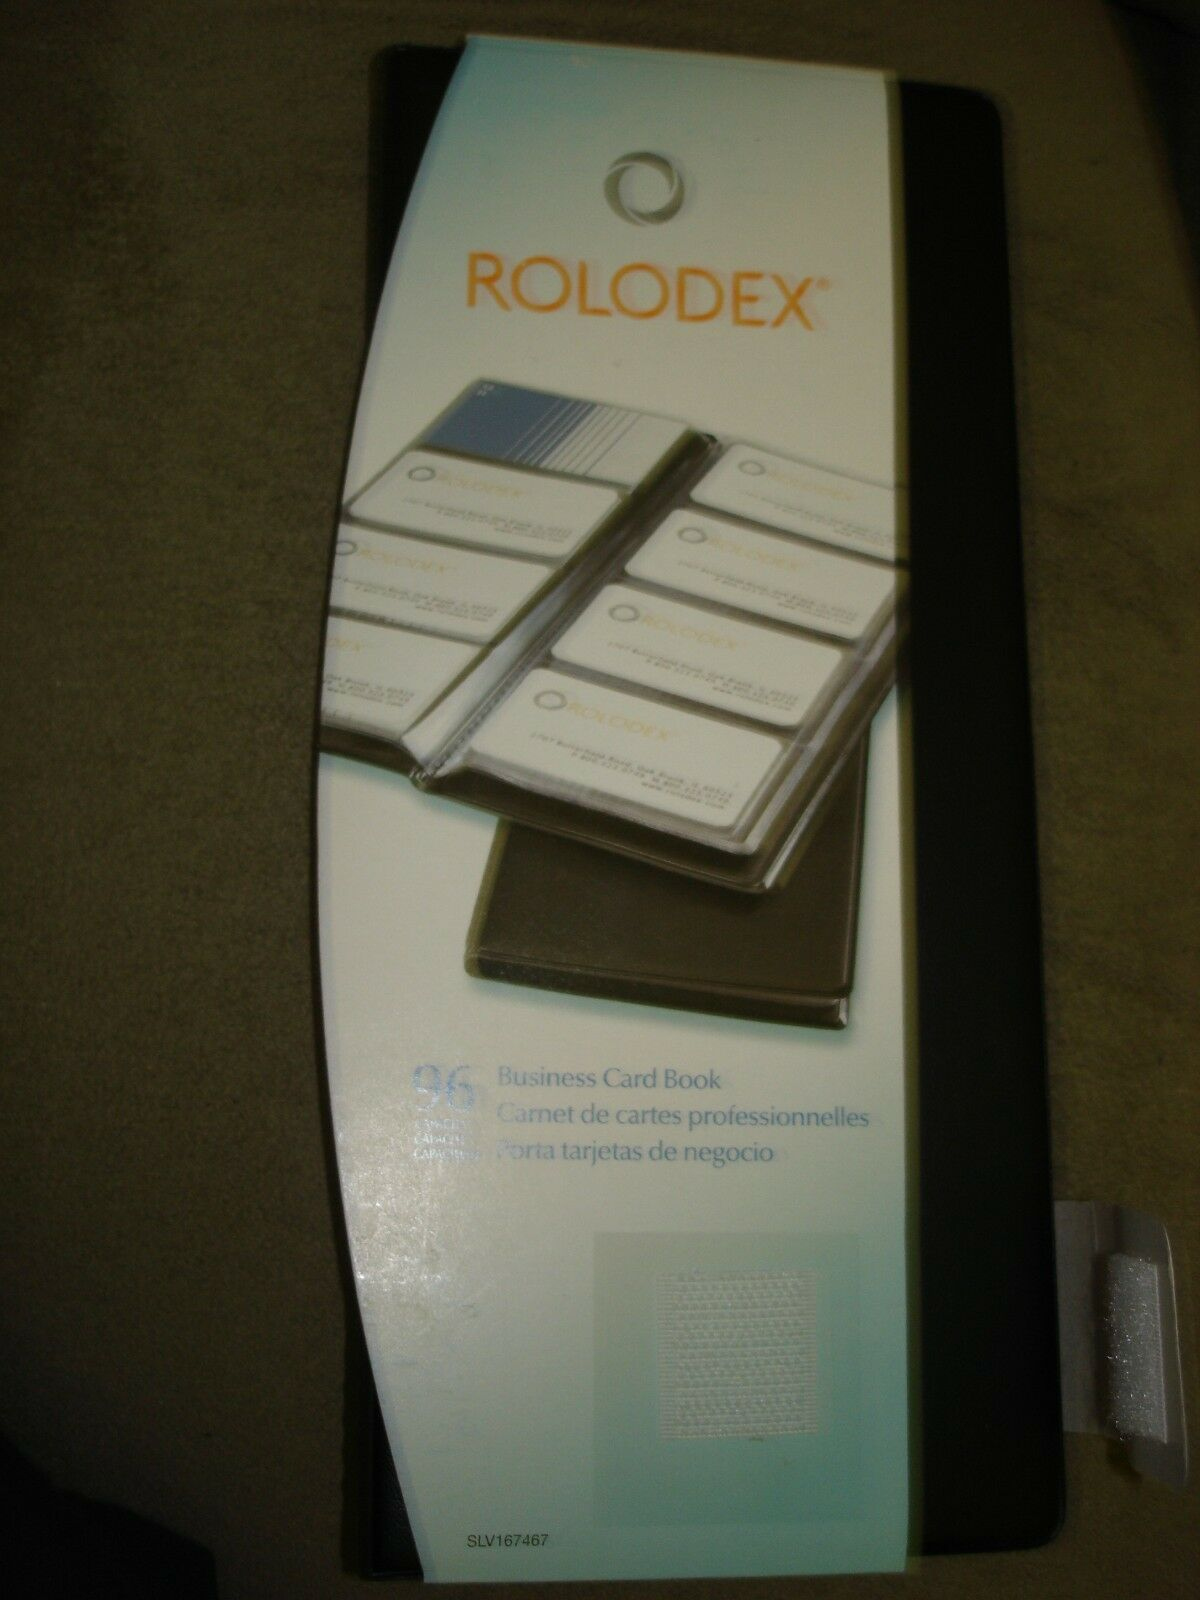 Rolodex business card book 96 card capacity 67467 400832204695 rolodex business card book 96 card capacity 67467 magicingreecefo Image collections